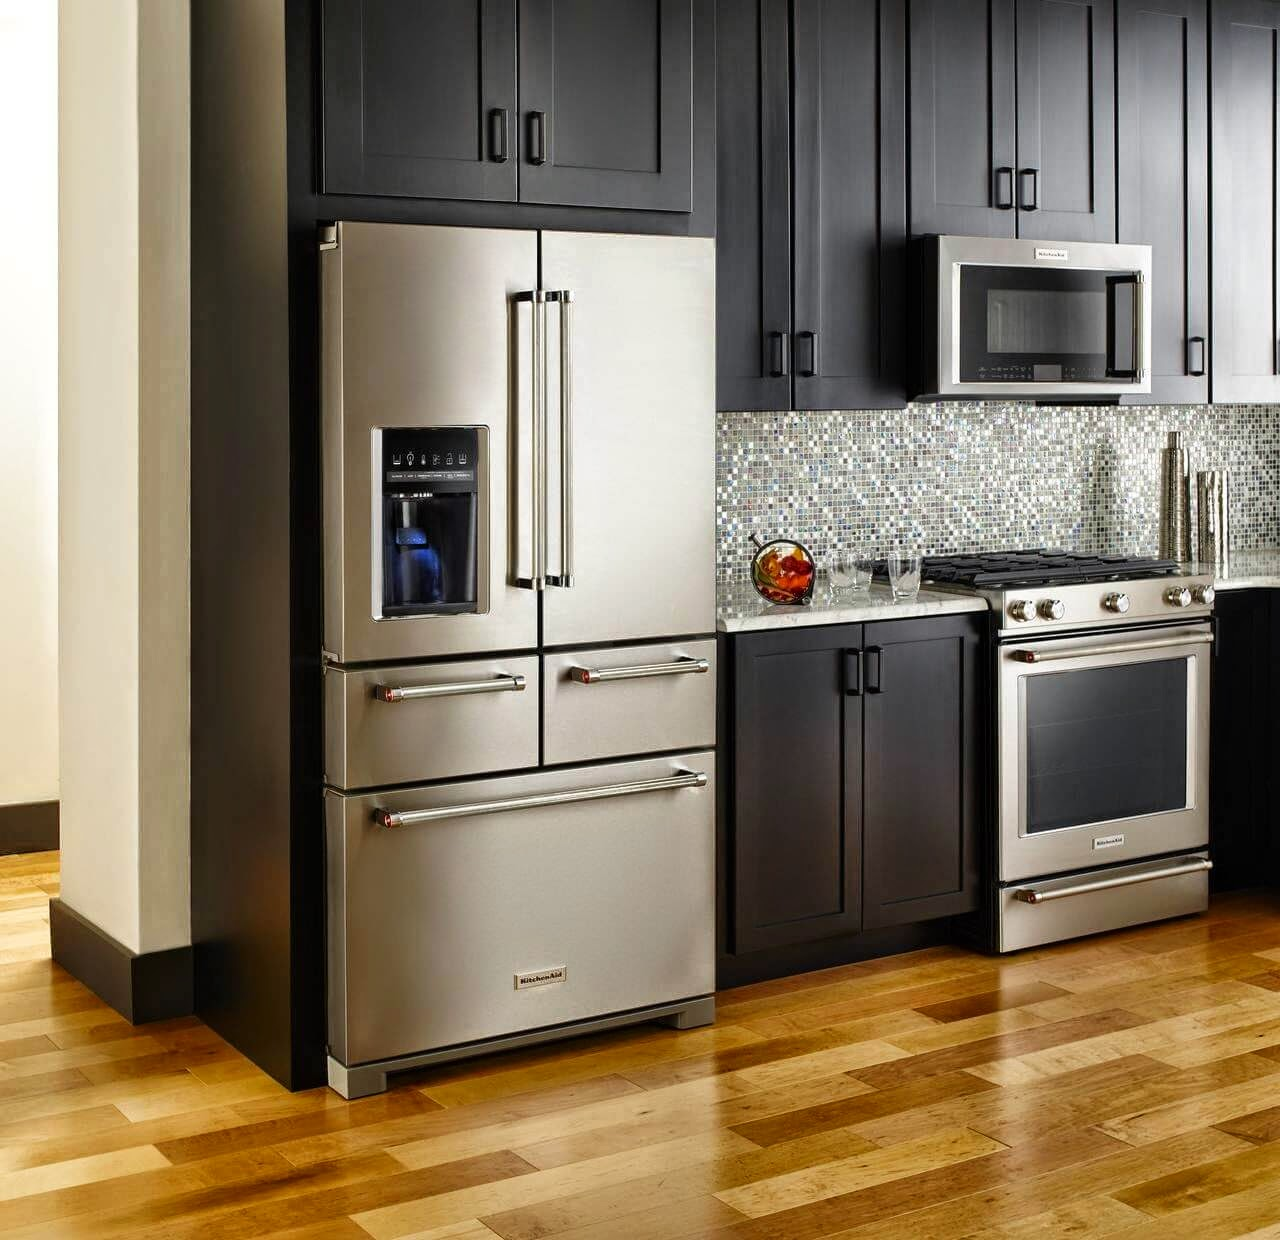 Incroyable ALL NEW 2015 5 Door KitchenAid Refrigerator